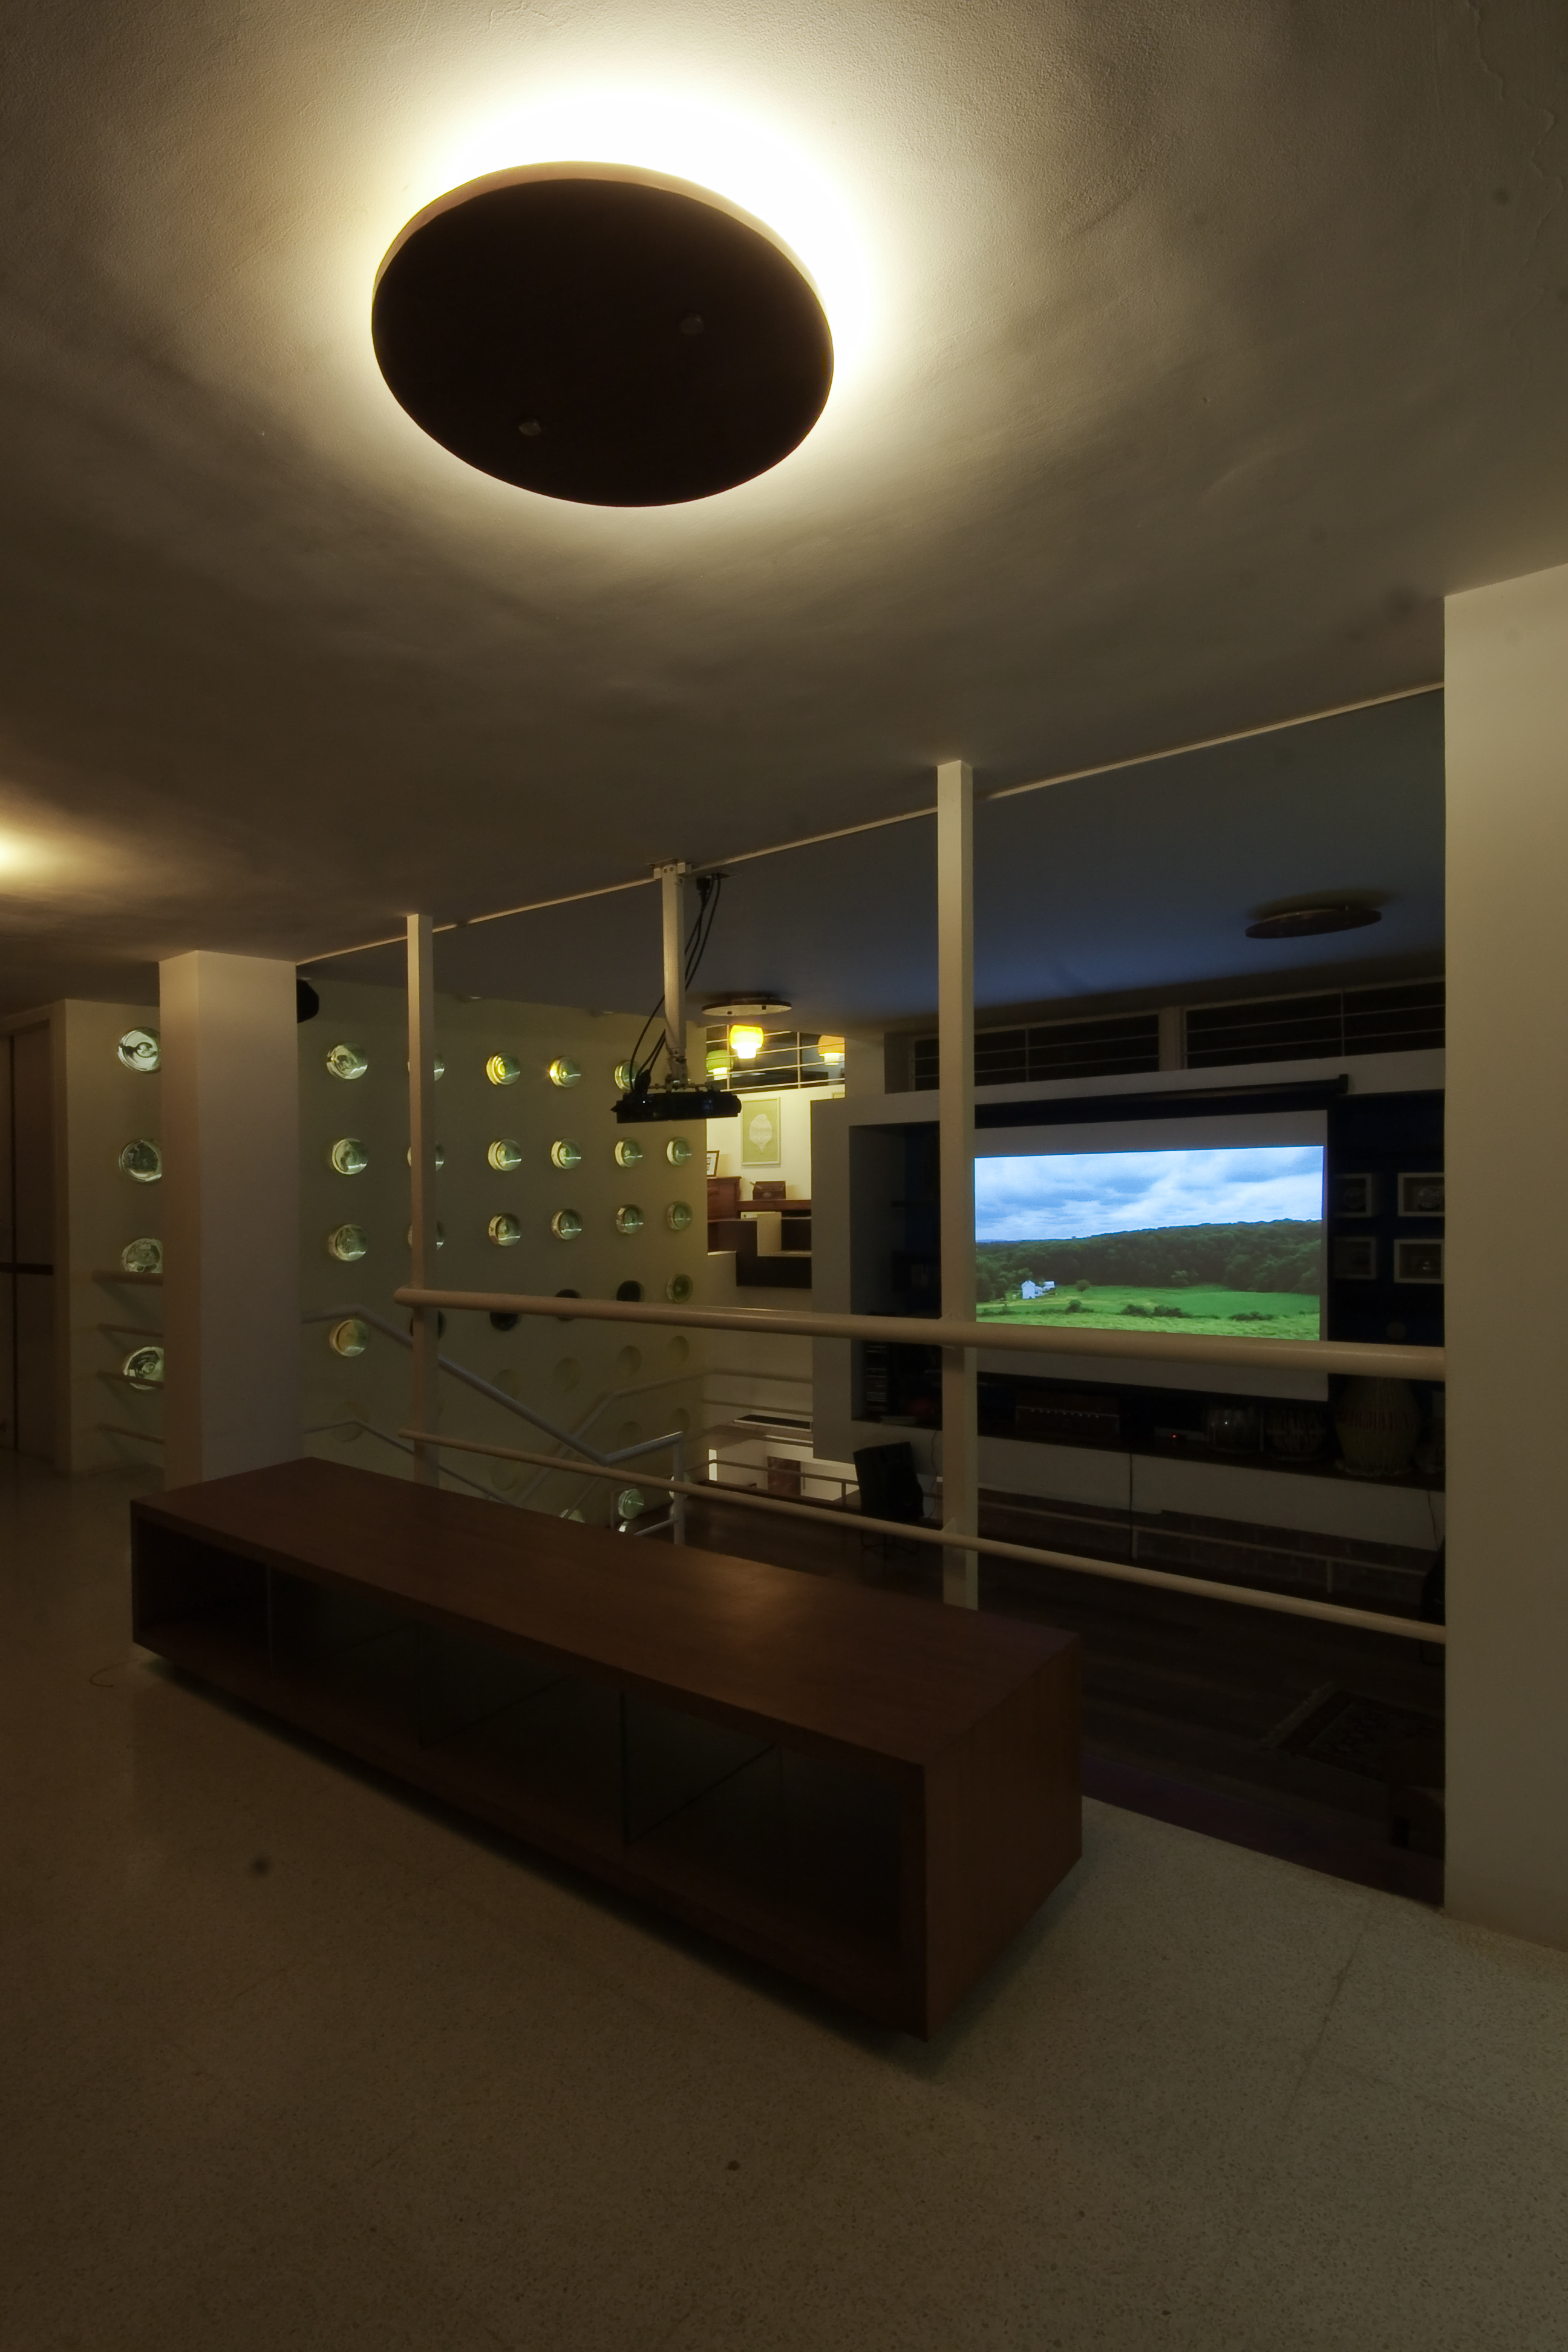 When darkness falls, a large screen can be lowered in the central living room for movie time.